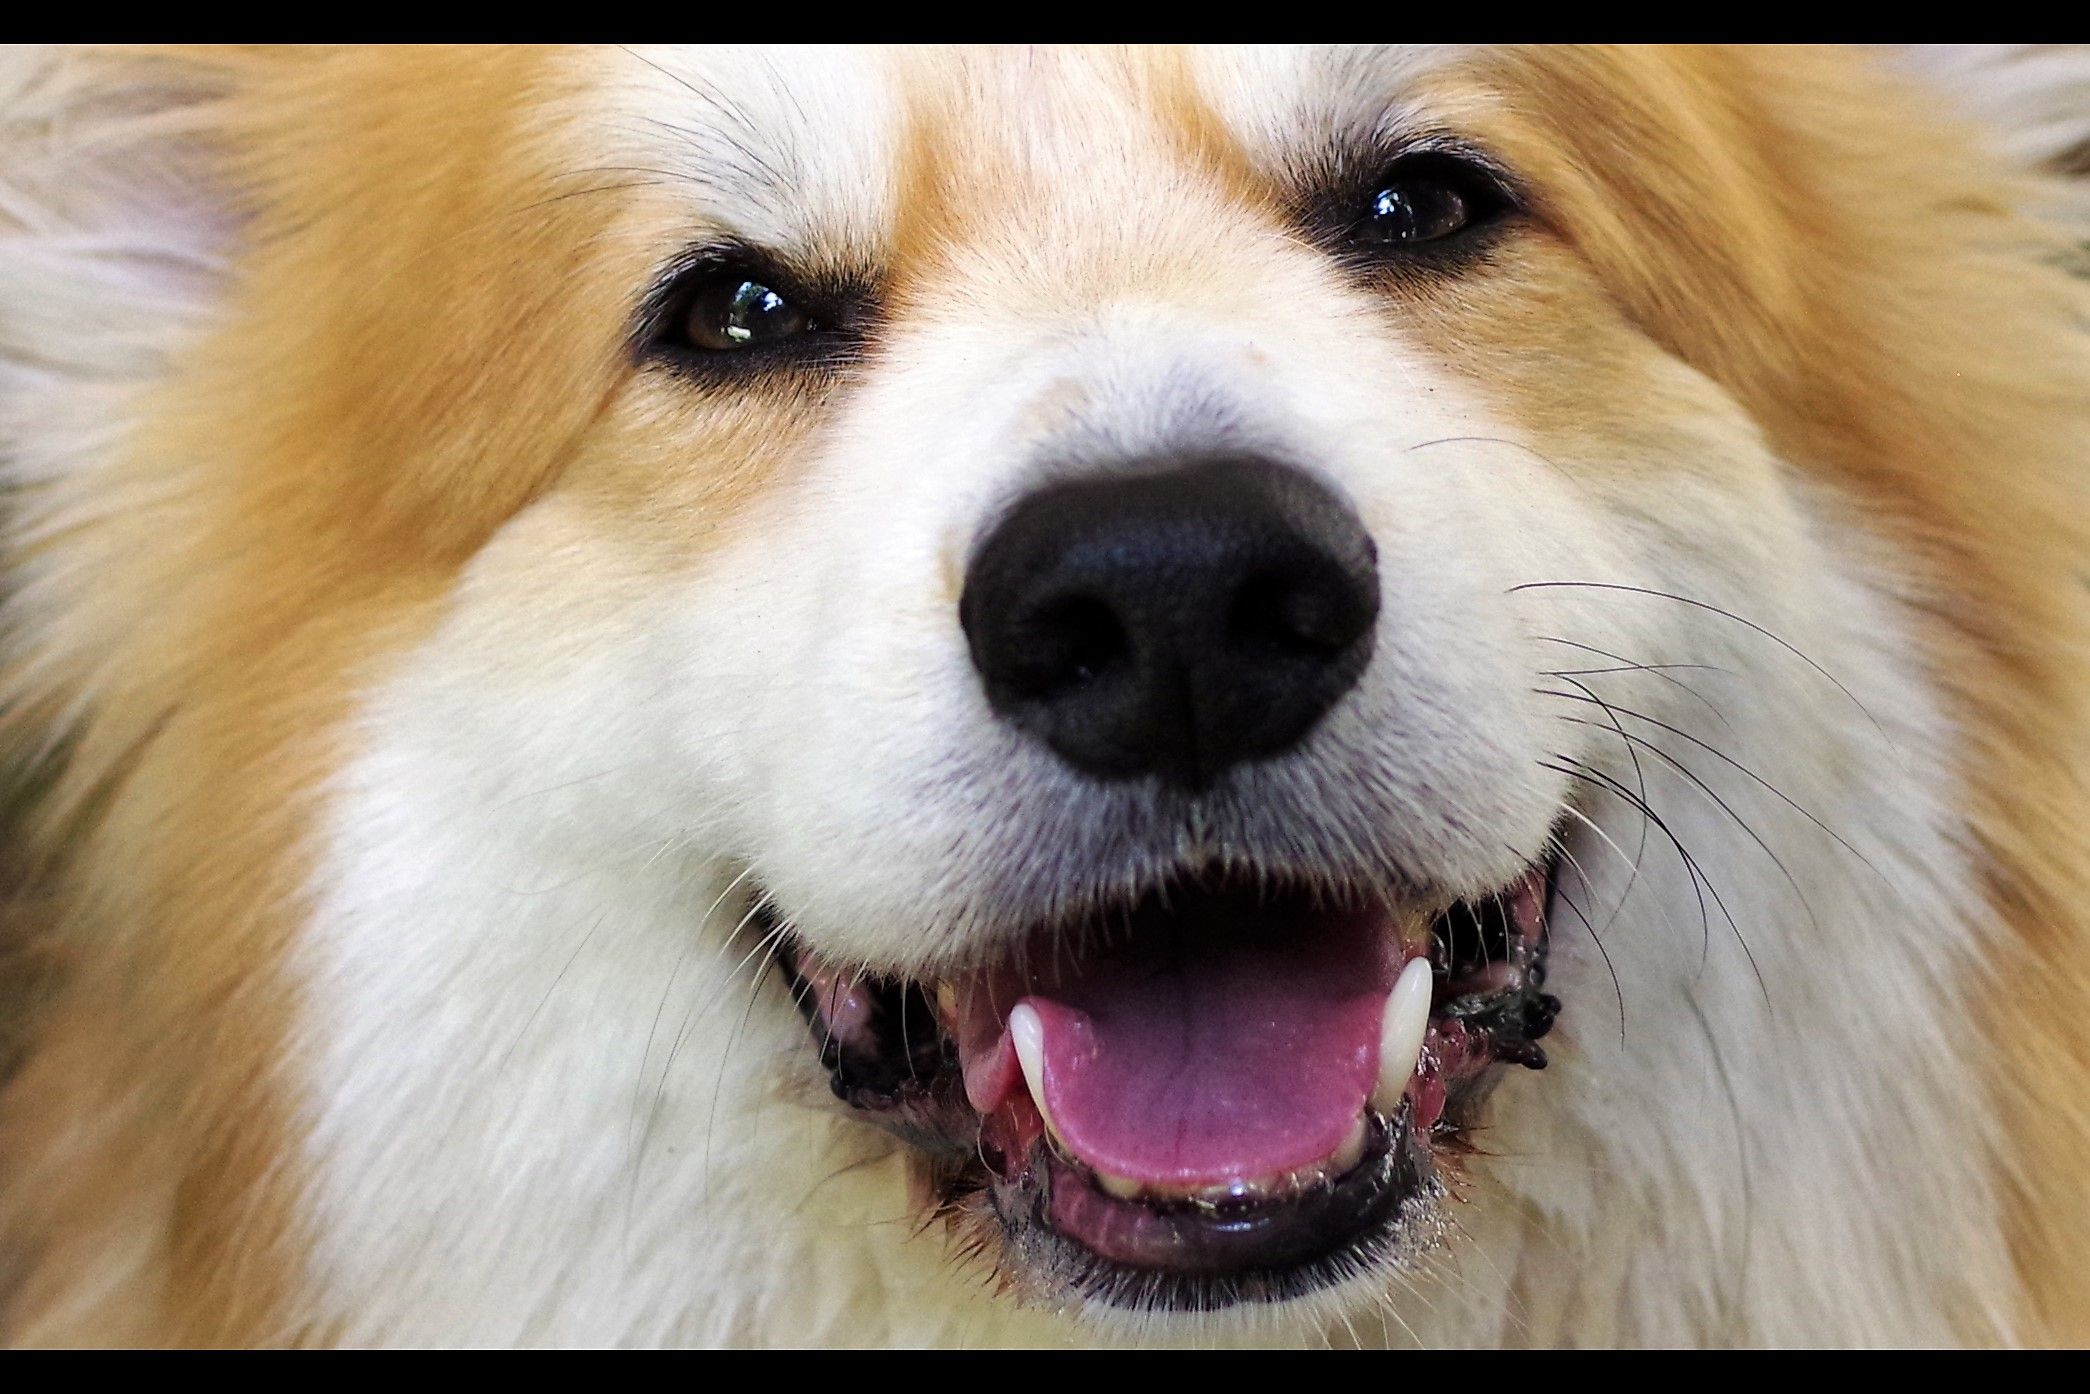 Sadly, all corgis look alike to me so I can't tell whether this one is cheerfully wanting to be patted, or imagining with pleasures the horrors it would inflict upon me given half a chance.